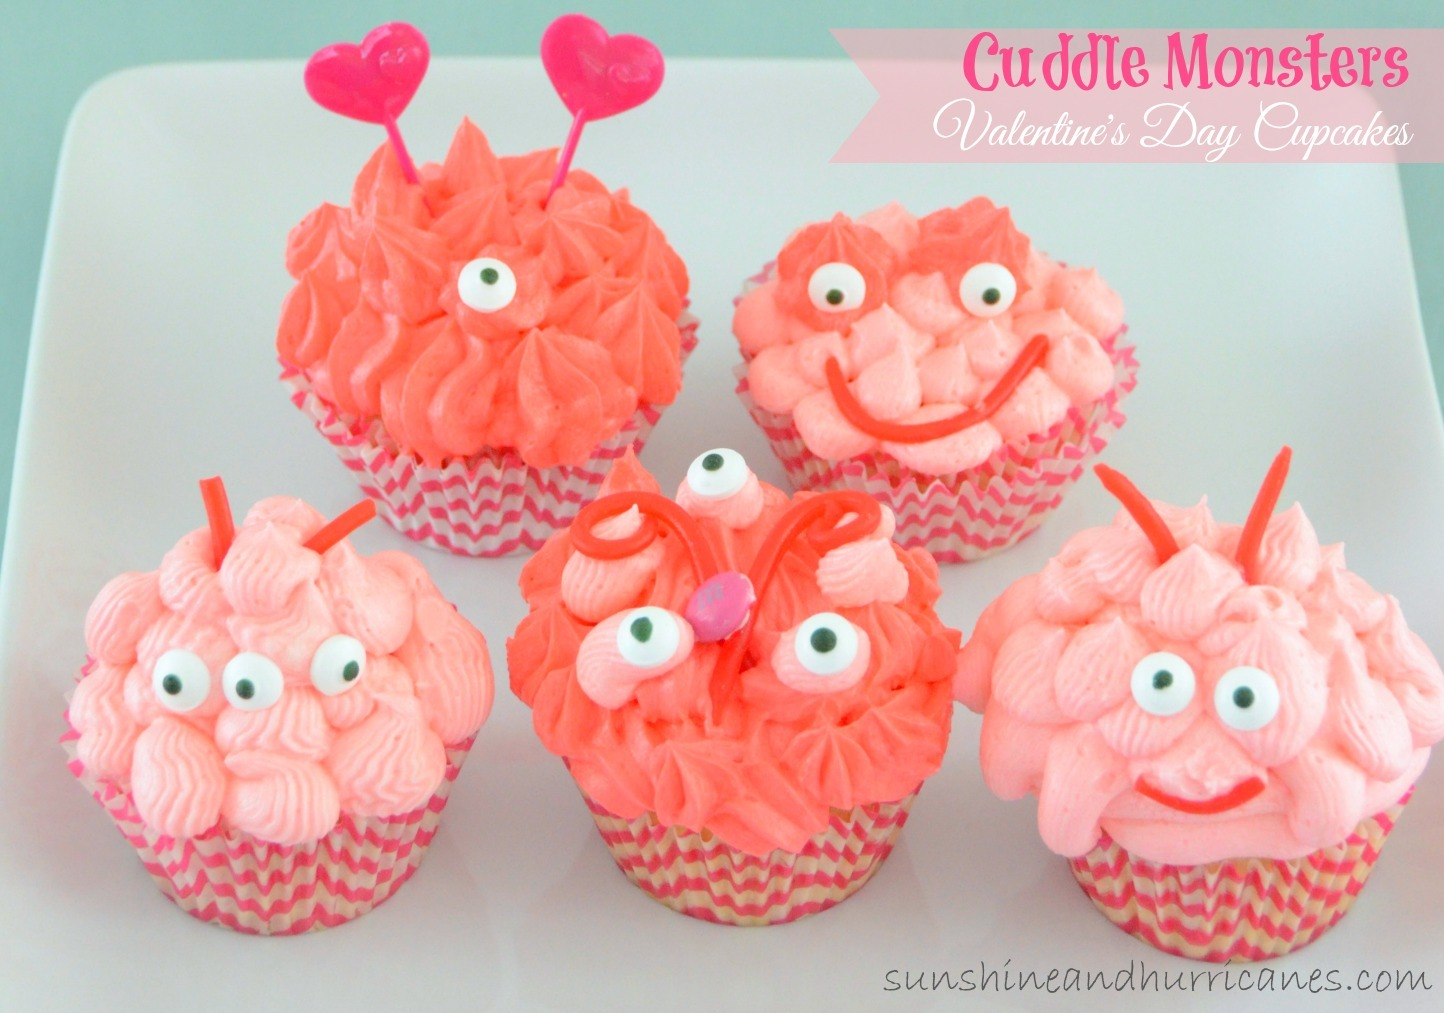 Cuddle Monster - Valentine's Day Cupcakes